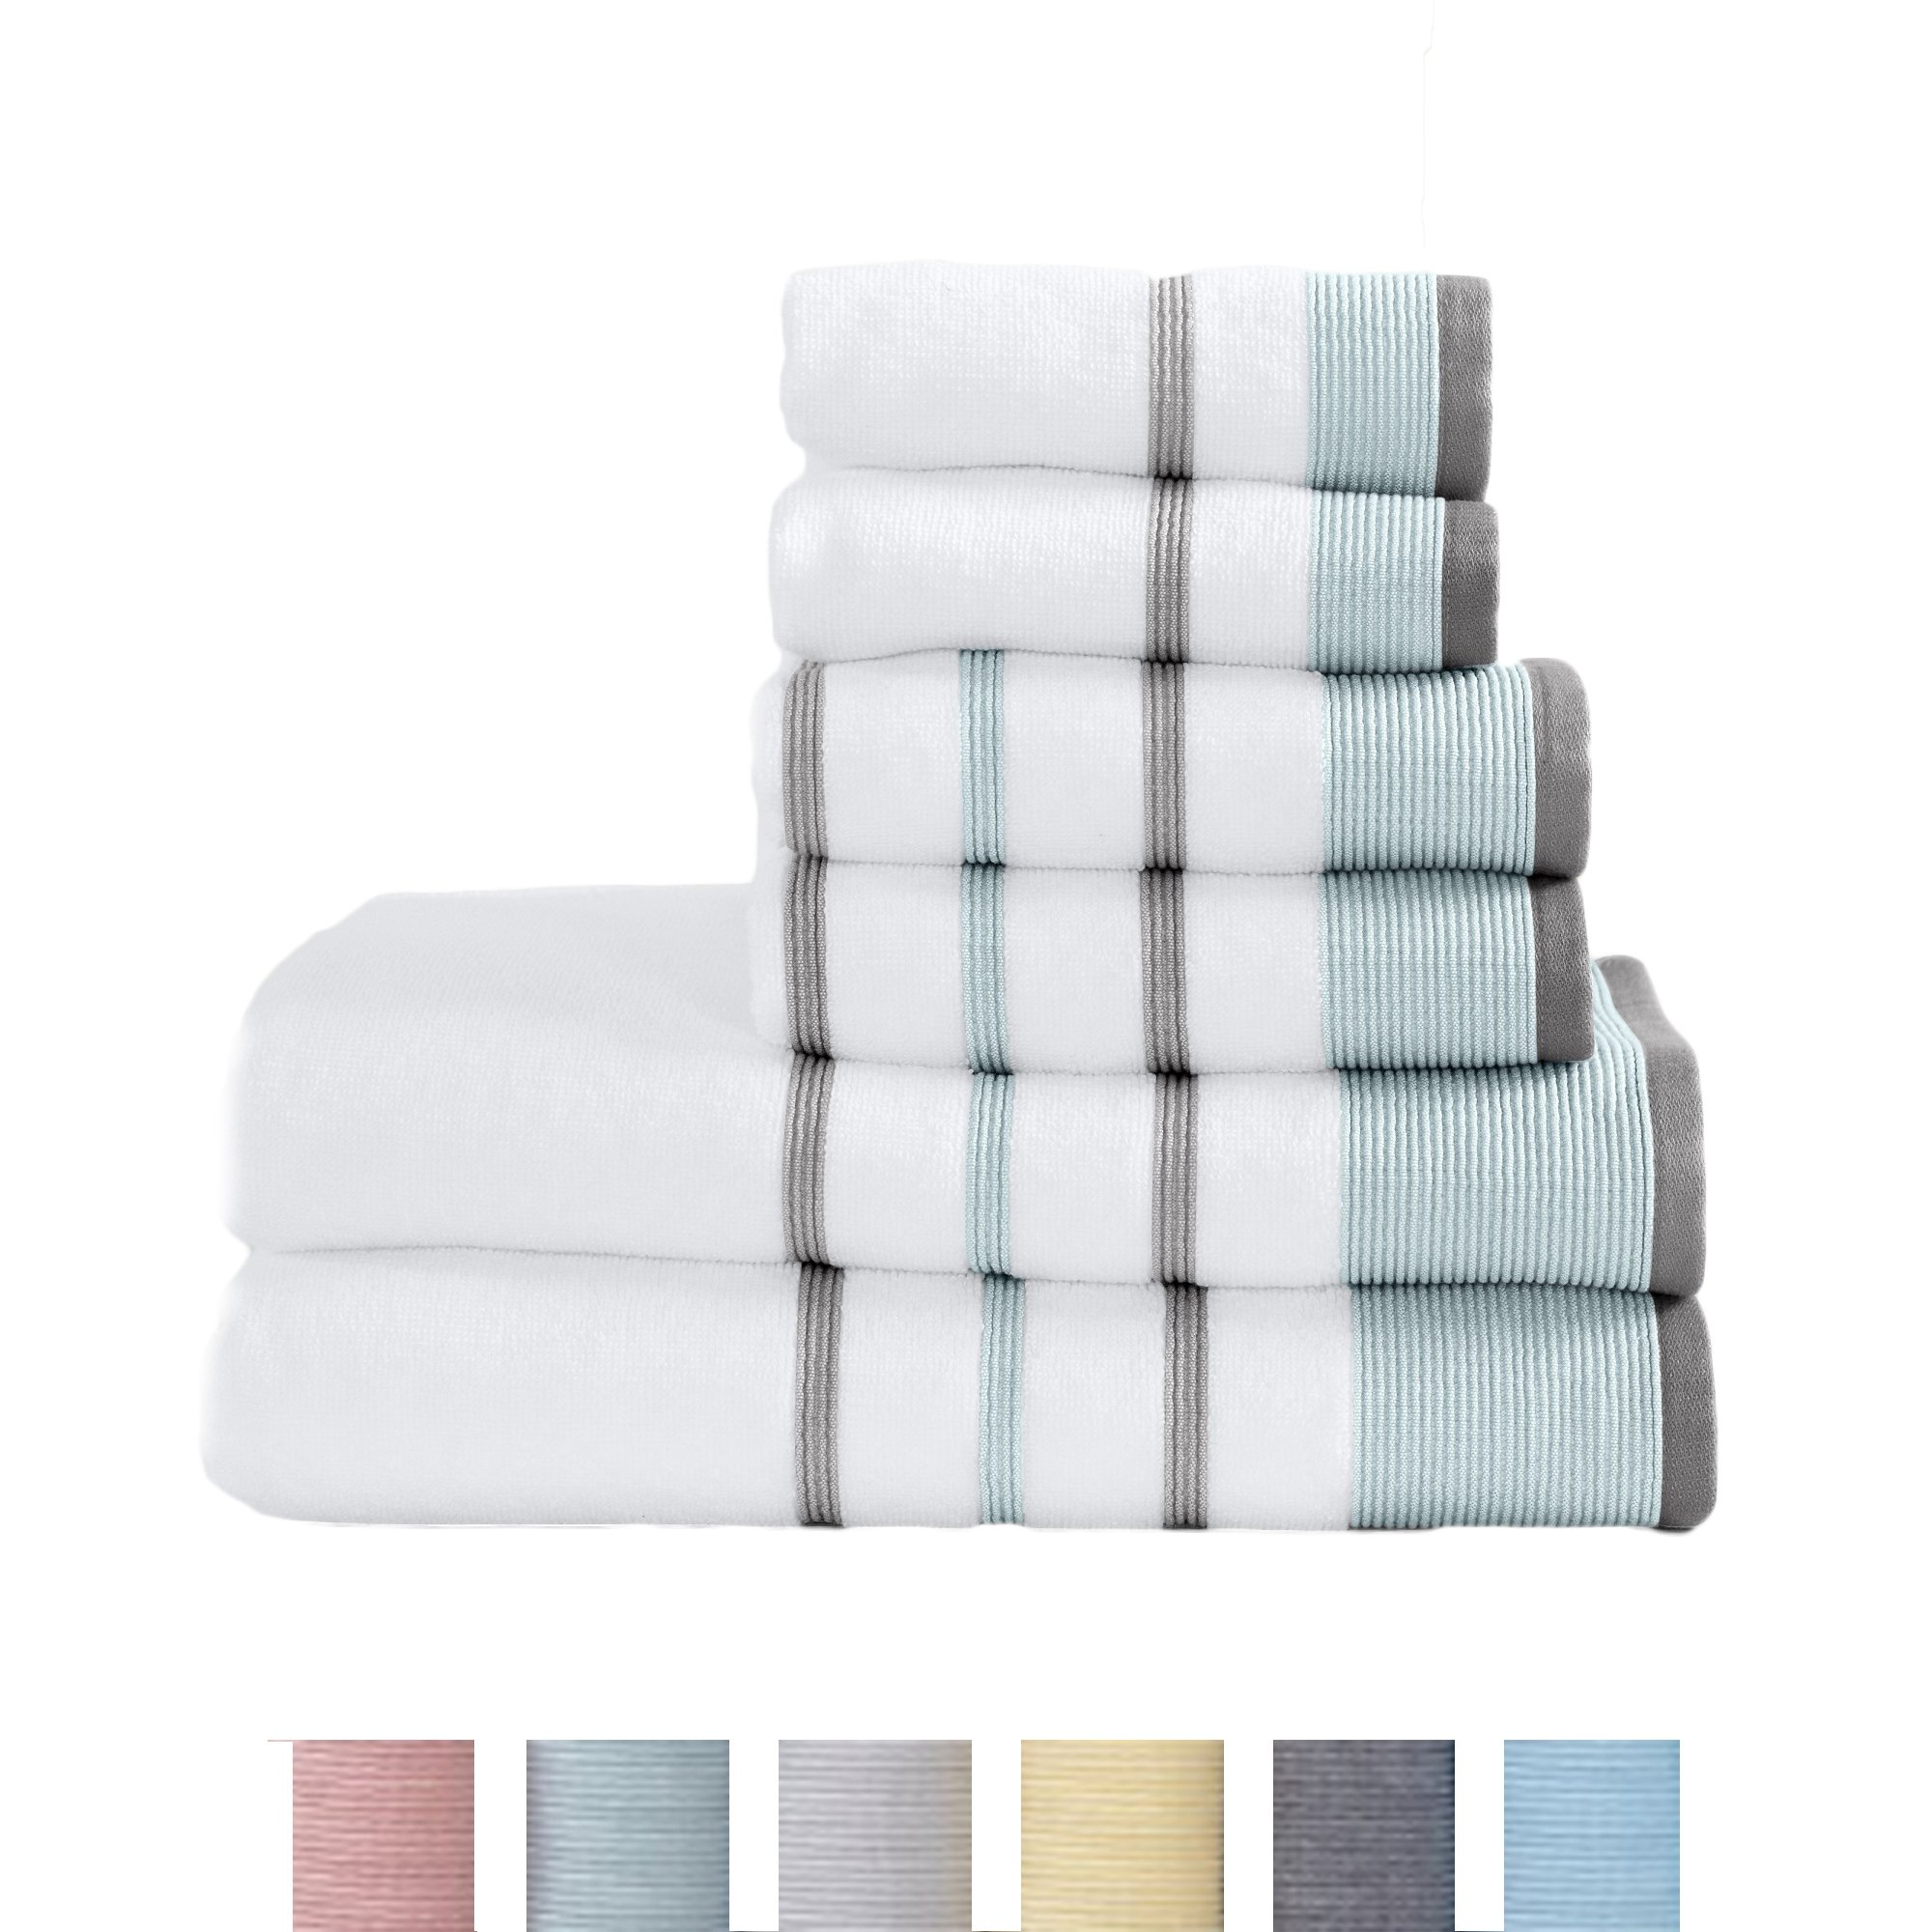 Great Bay Home 6-Piece Luxury Hotel/Spa 100% Turkish Cotton Striped Towel Set, 500 GSM. Includes Bath Towels, Hand Towels and Washcloths. Noelle Collection By Brand. (Eucalyptus/Grey)